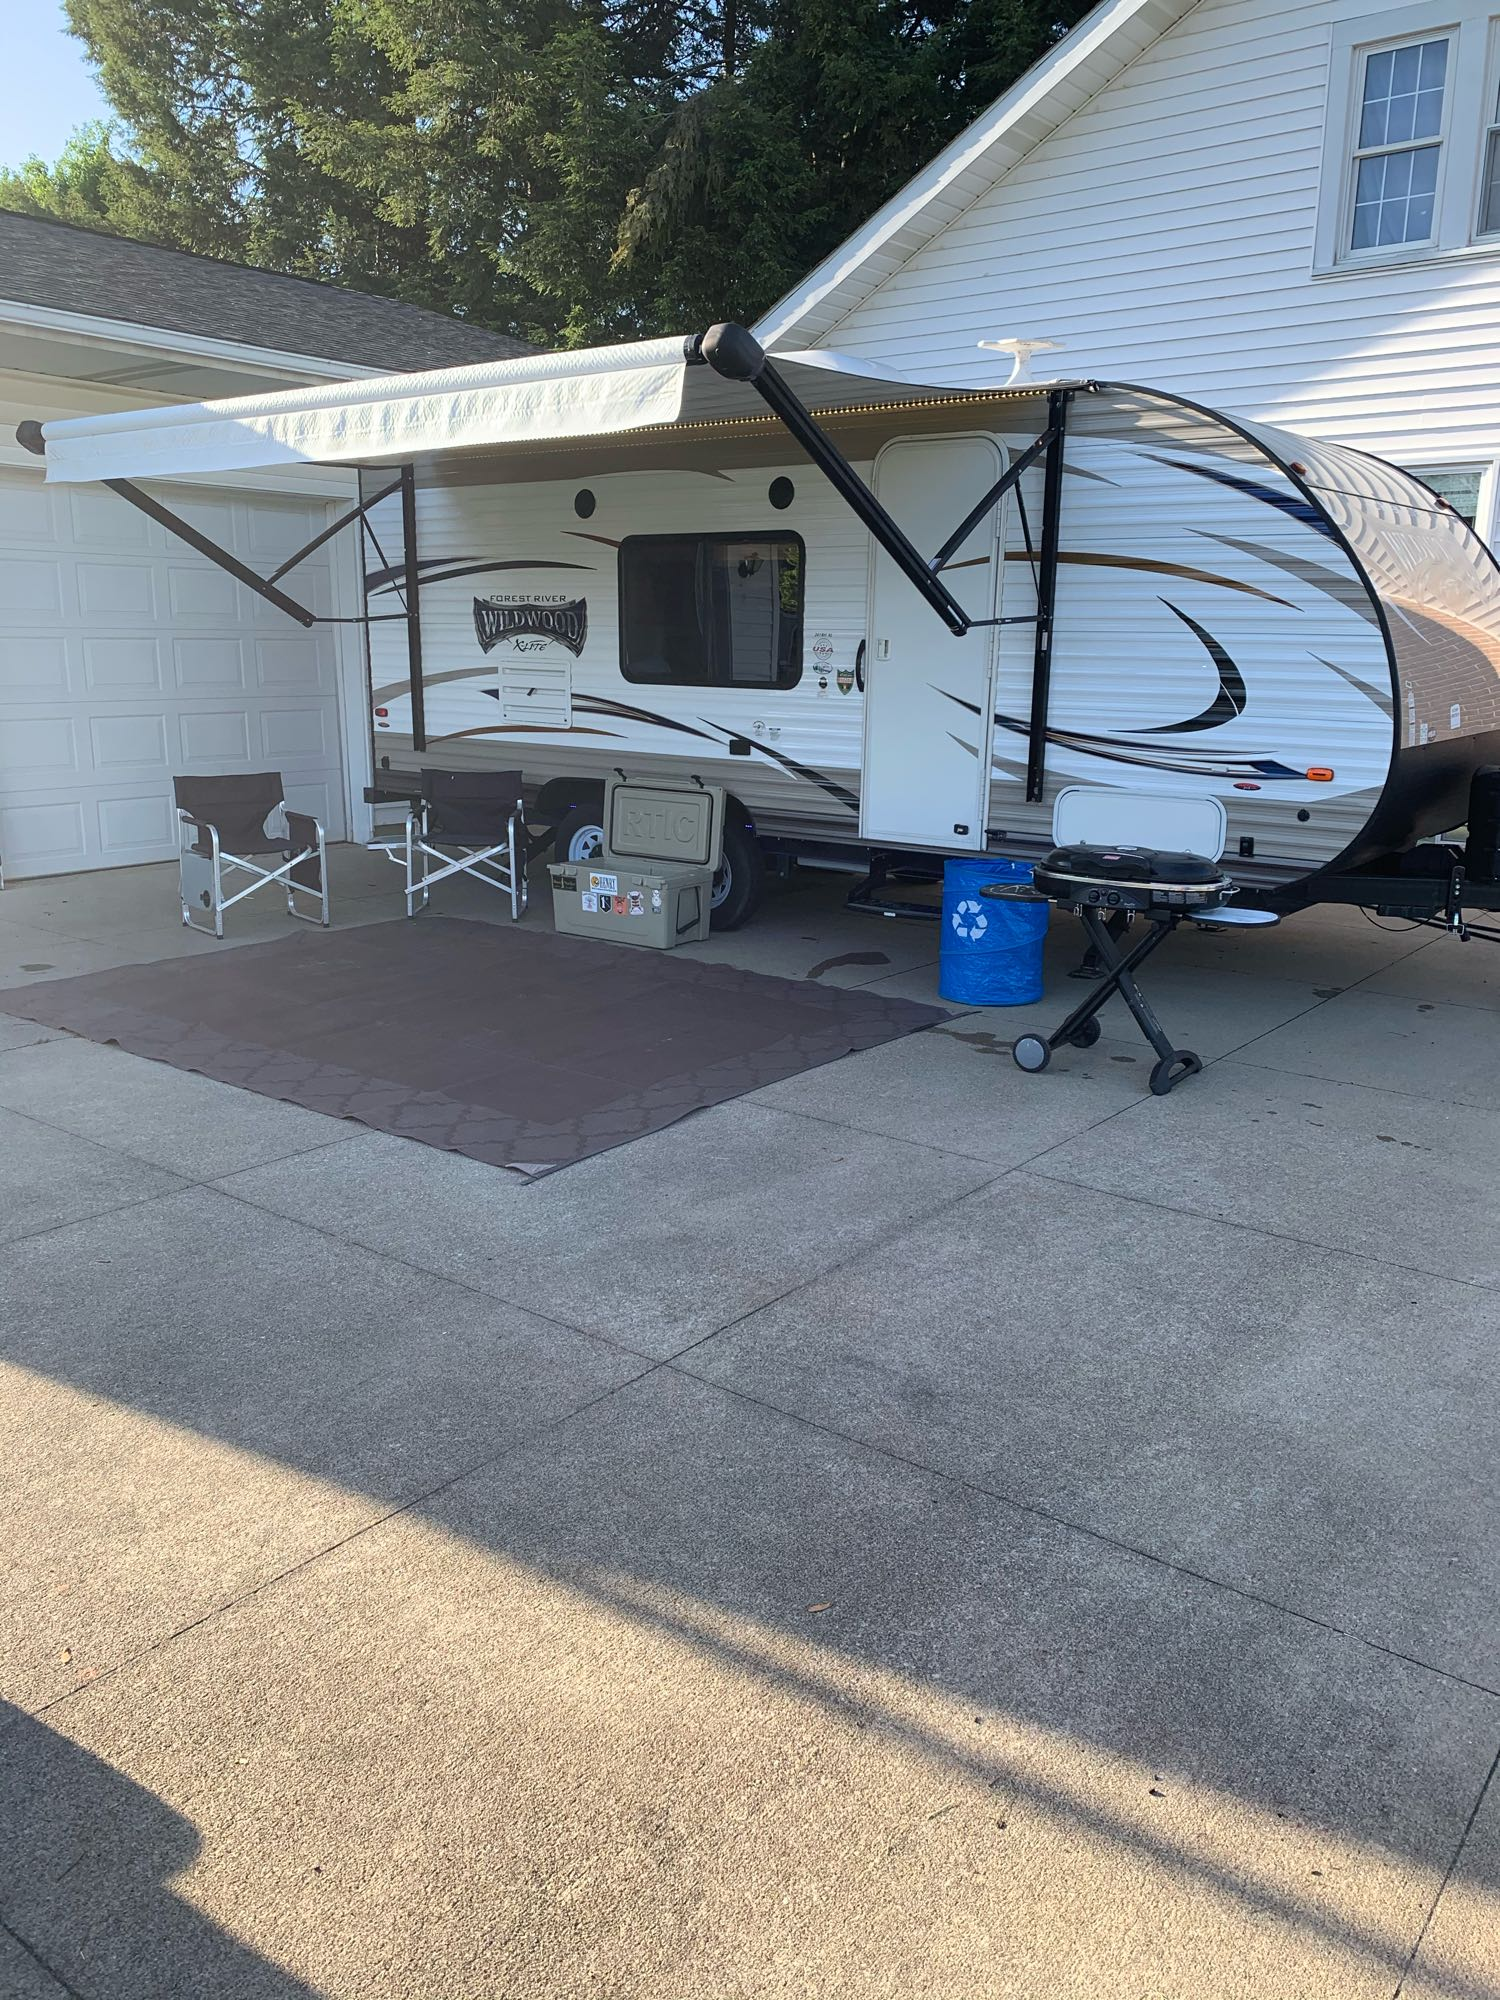 Rental includes 4 camping chairs (only two shown). Trash/recycling container for easy disposal of trash. Coleman road trip grill (propane adapter included). Camping all weather rug. RTIC 65 cooler. Picture shows LED under coach lights and under awning LED strip as well.. Forest River Wildwood X-Lite (201BHXL) 2018